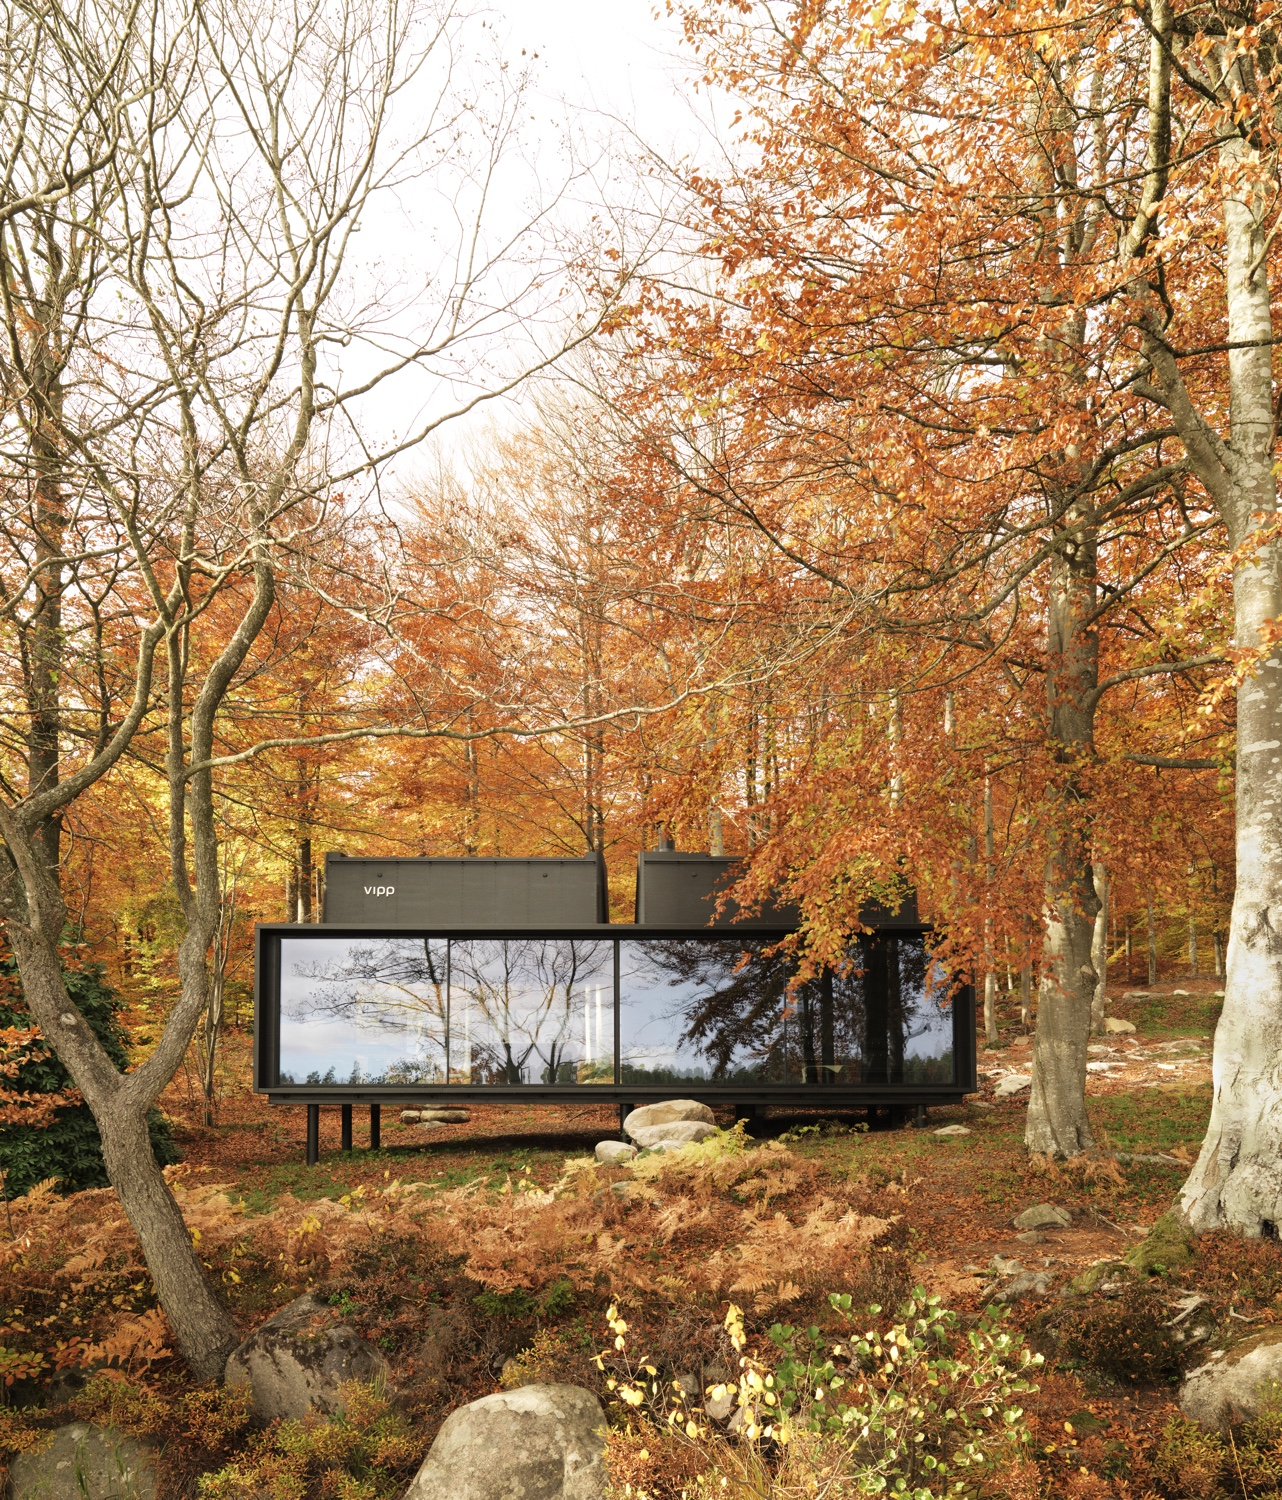 Off the beaten track, deepin the wooded Swedish countryside, liesthe Vipp Shelter. This smart and compact home is the perfectNordic lakeside getaway. Image© 2016 Vipp.